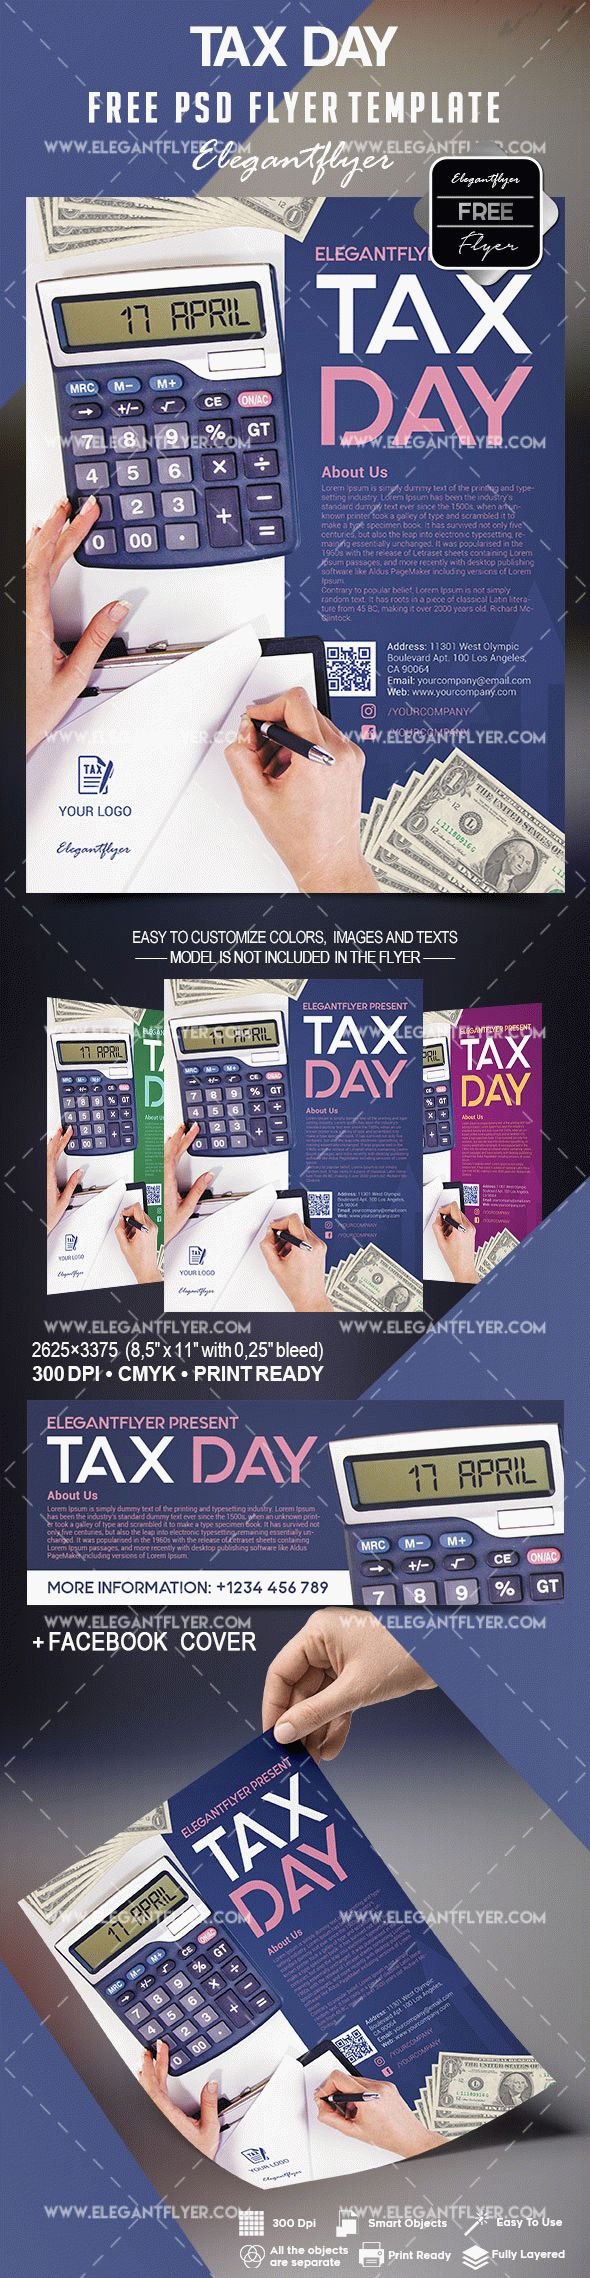 Free Tax Day Flyer Template